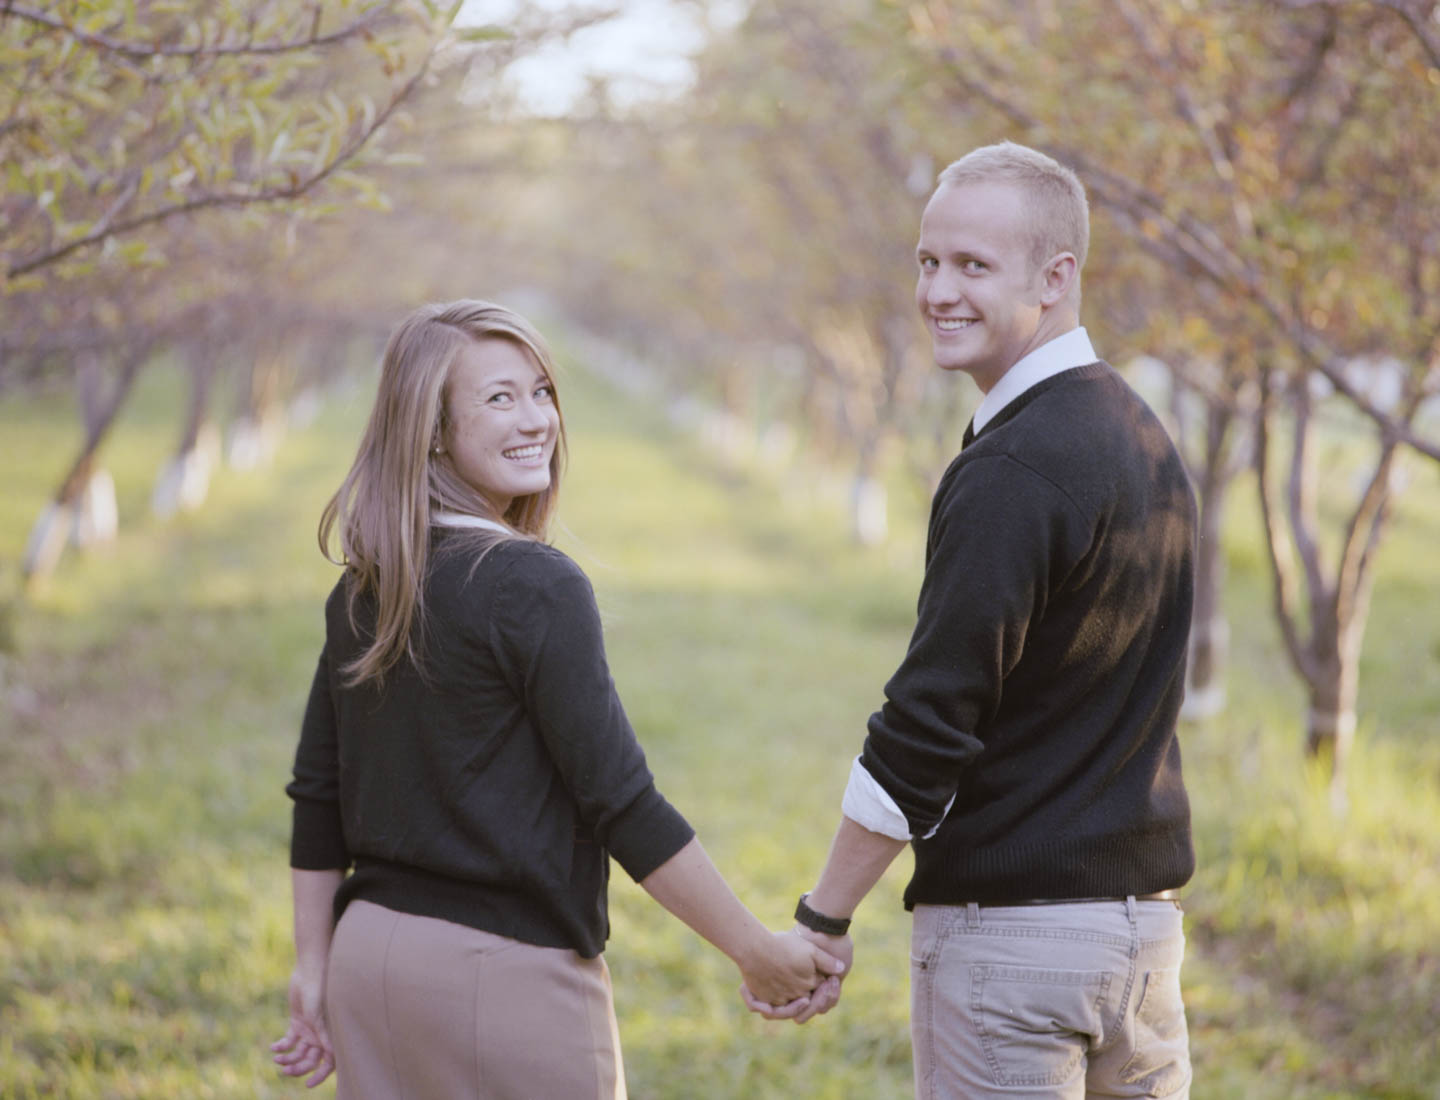 Engagement photography at an apple orchard